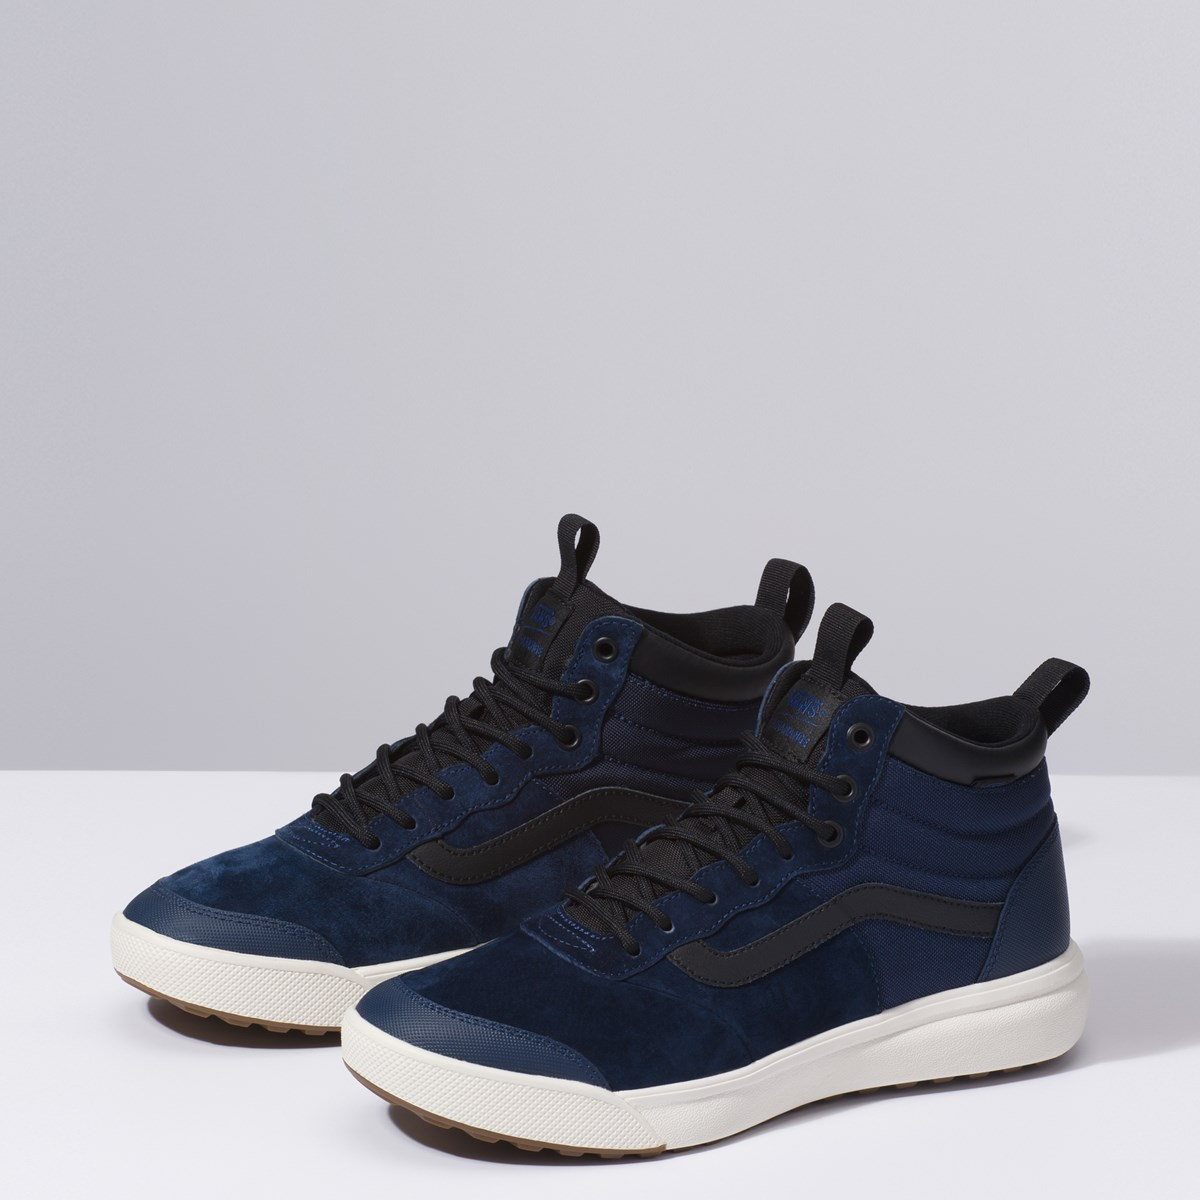 Men's UltraRange Hi sneaker in Navy